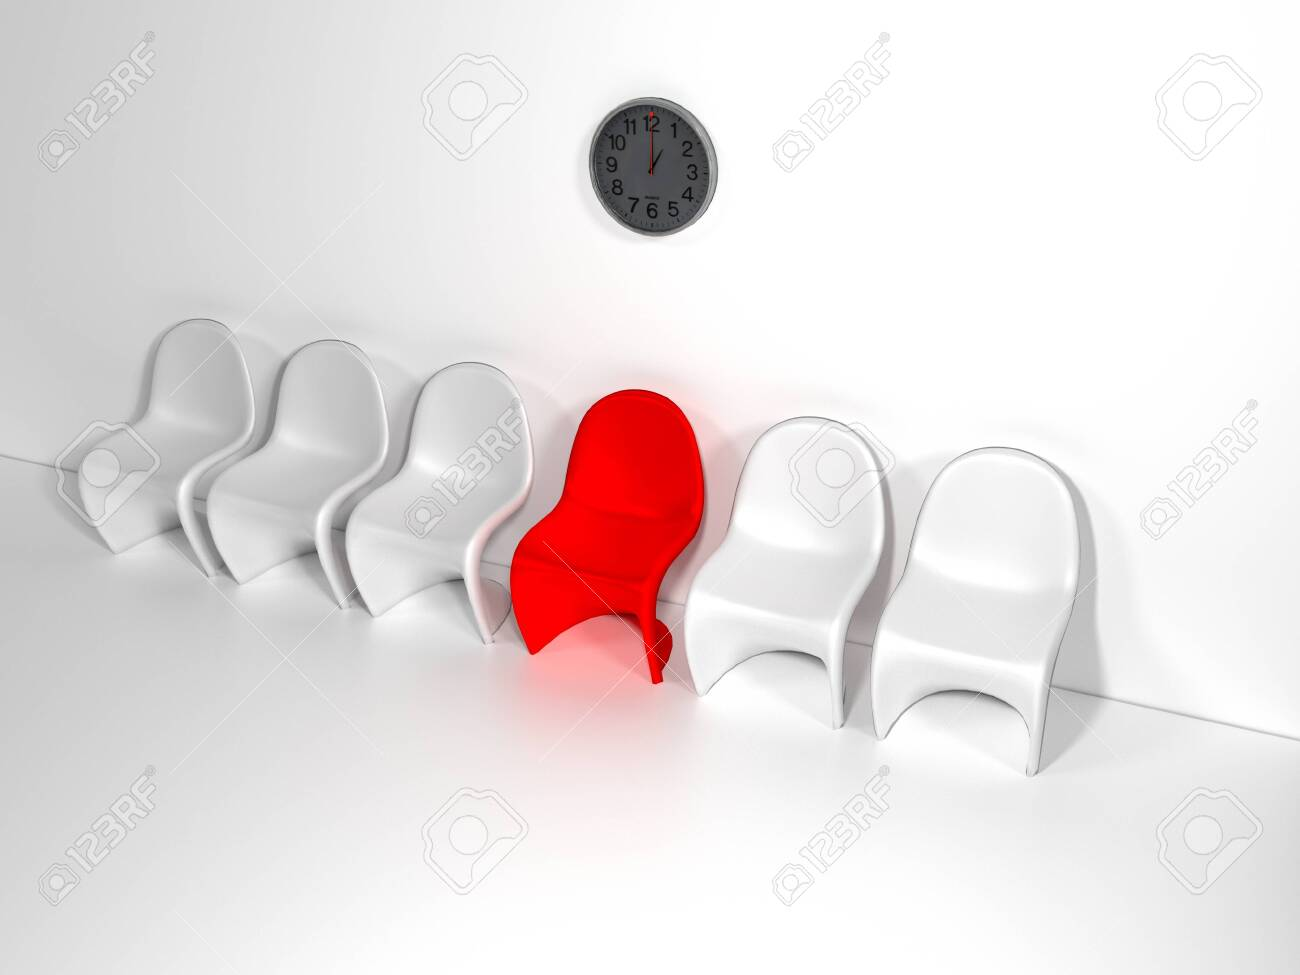 Row of chairs with one odd one out. Job opportunity. Business leadership. recruitment concept. 3D rendering - 118819184